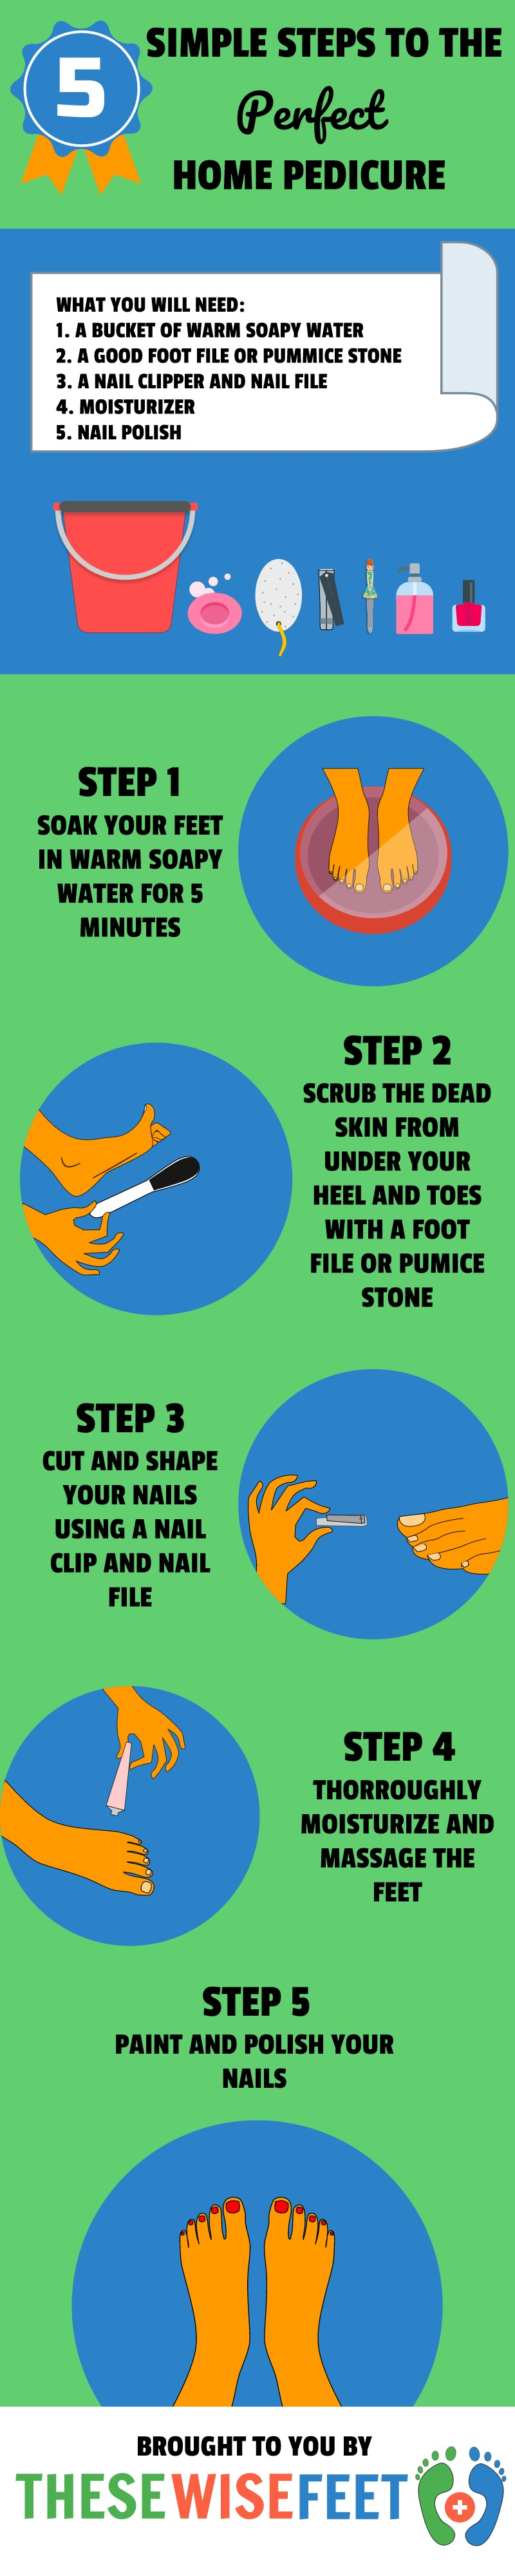 Professional Home Pedicure Infographic For Men And Women